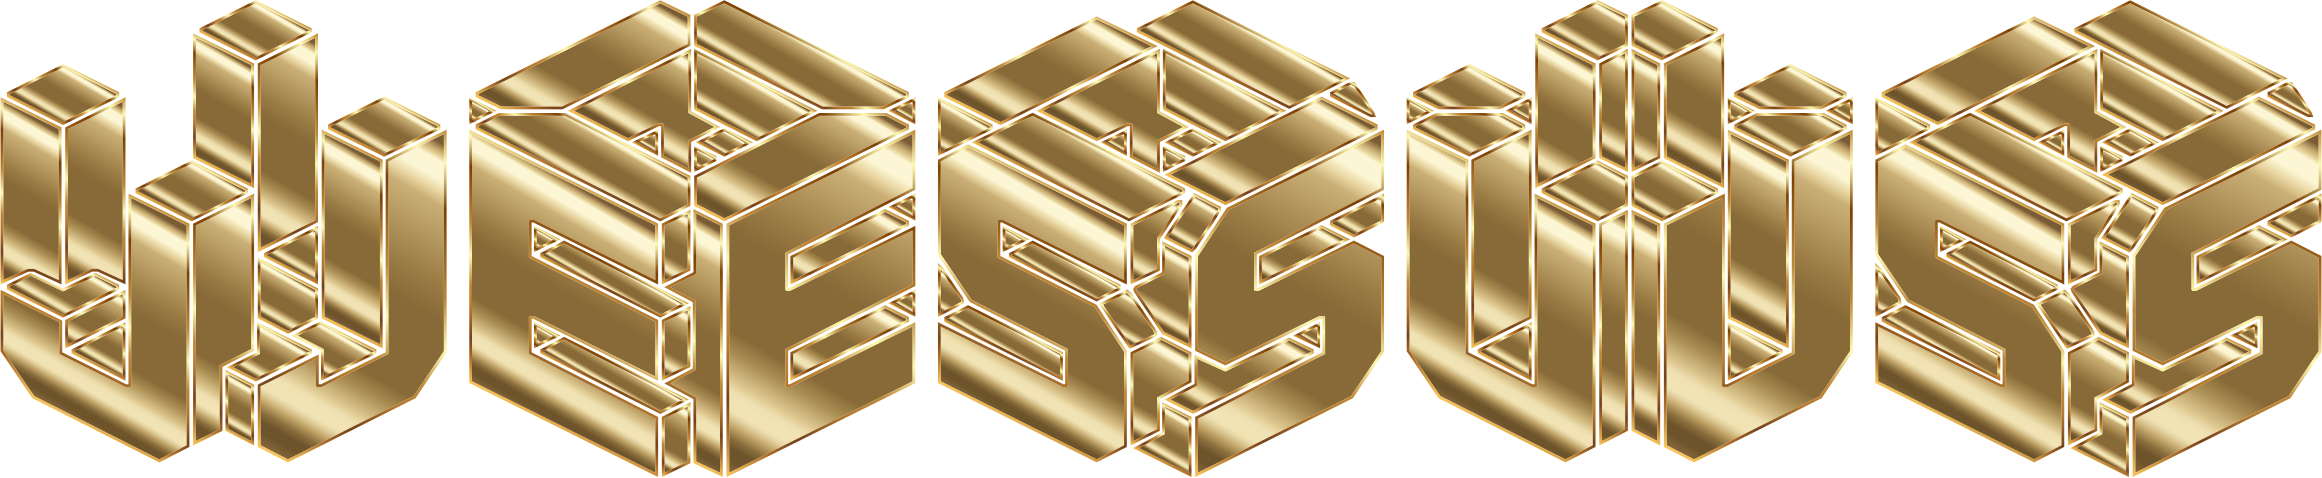 Gold 3D Isometric Jesus Typography No Background by GDJ